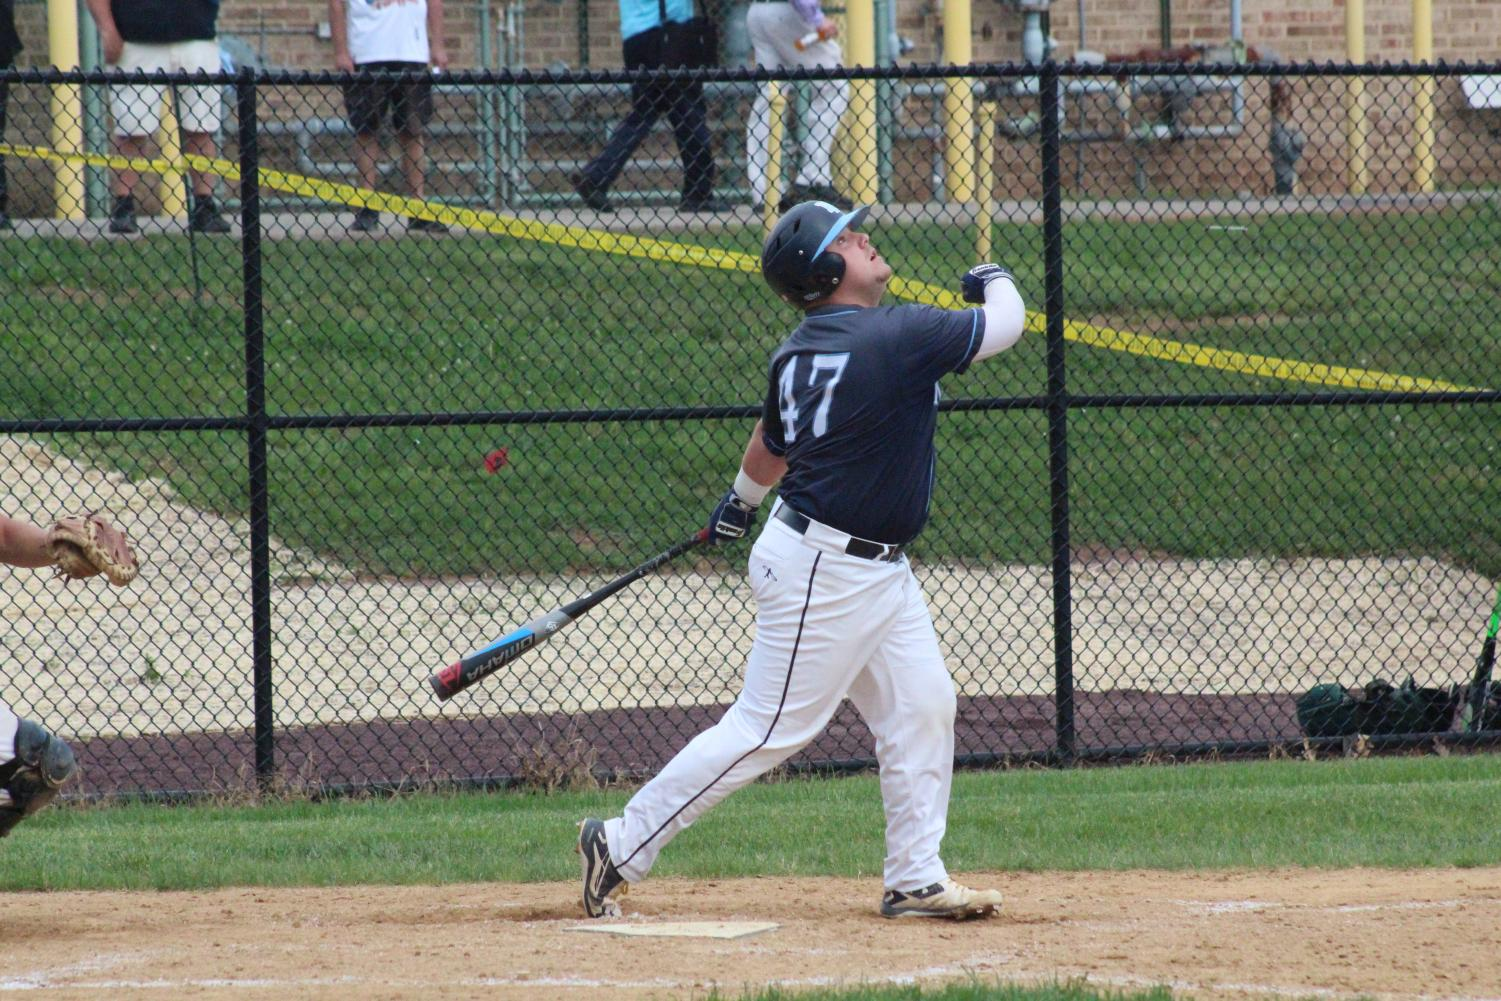 BASEBALL- Senior Hunter Hamlin collects two hits in the second half of the Knights vs Pennridge game.